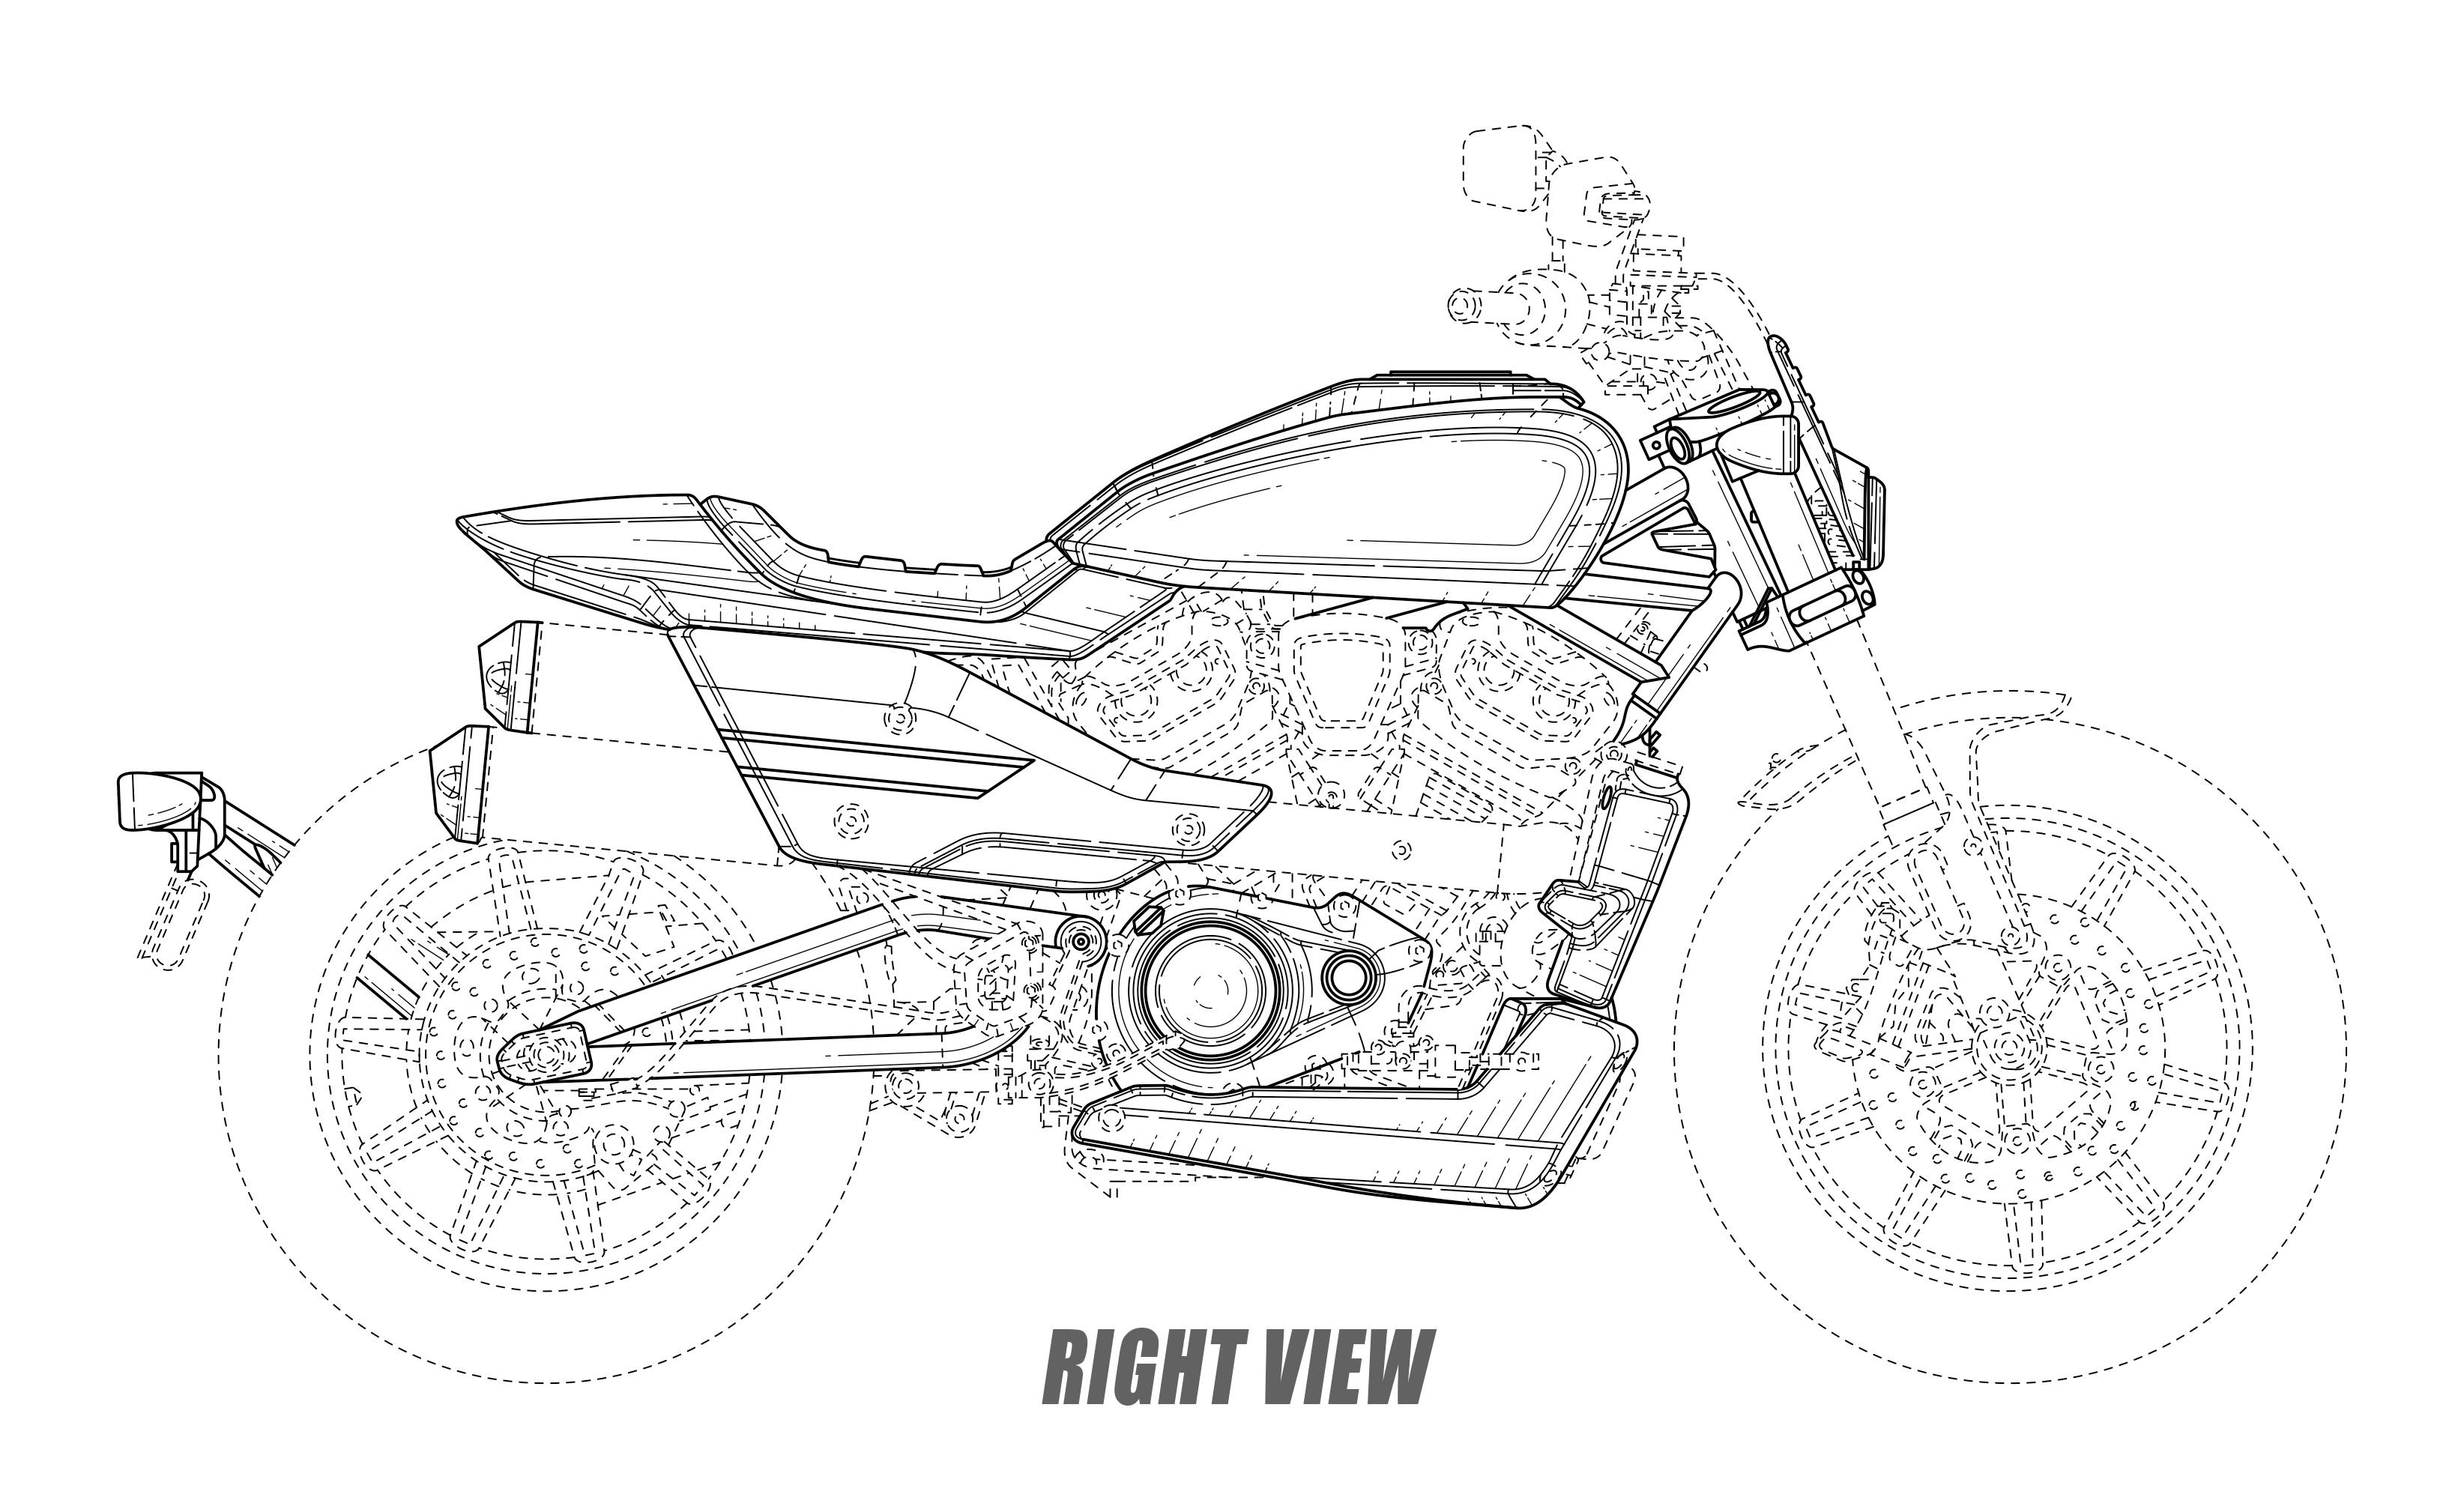 Harley Davidson Files Cafe Racer And Flat Tracker Designs